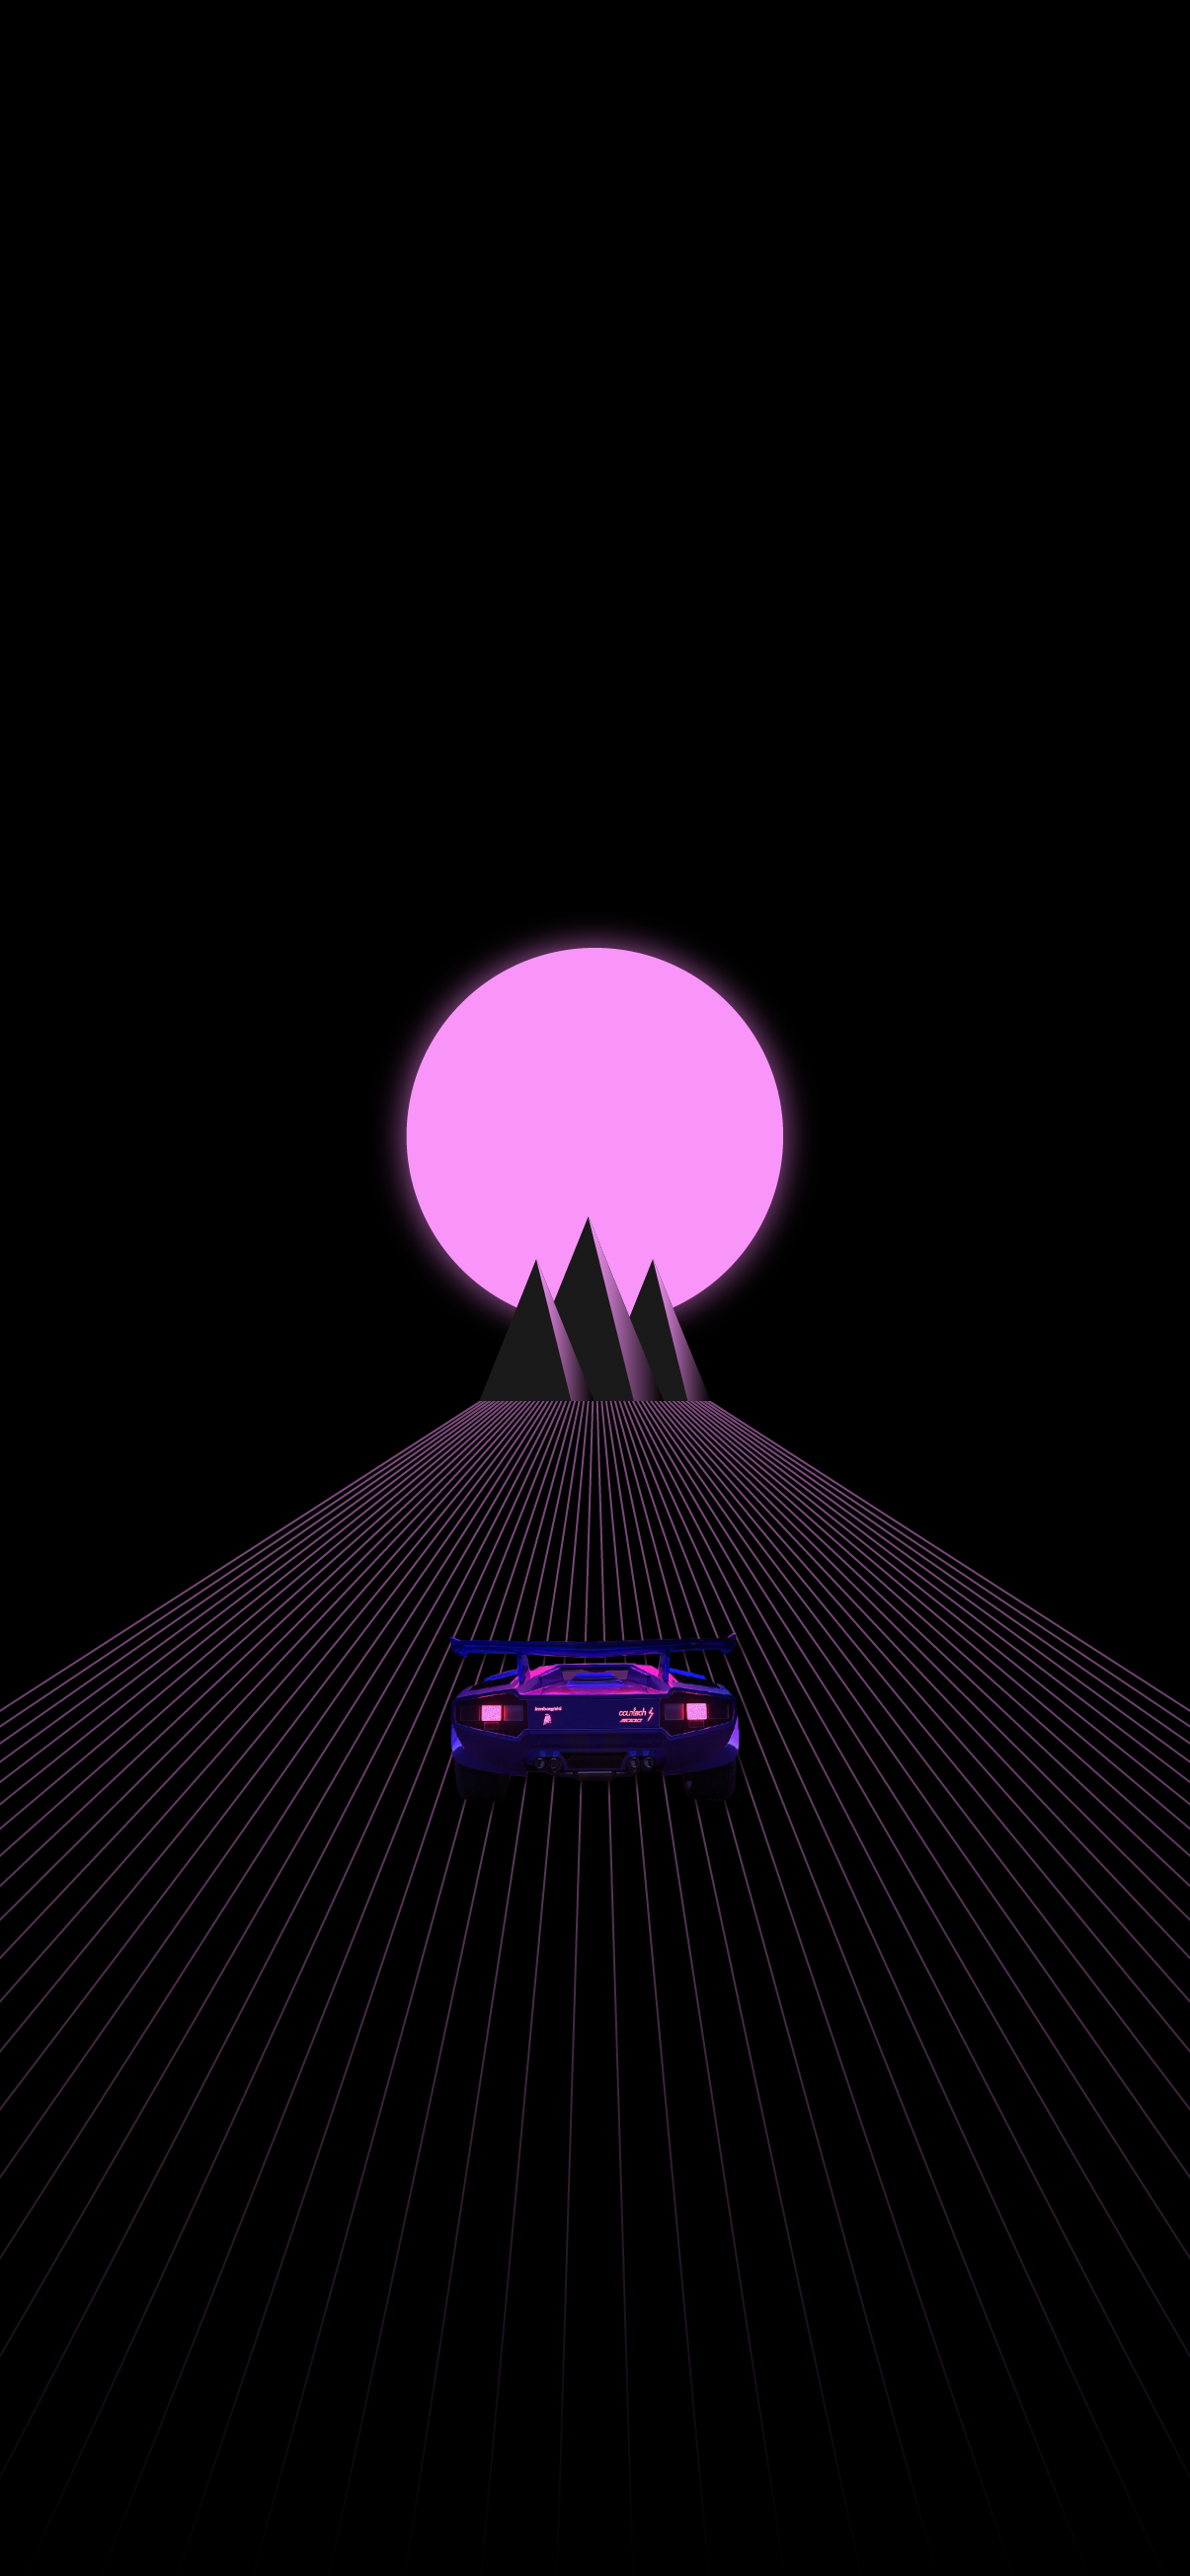 synth style background wallpaper